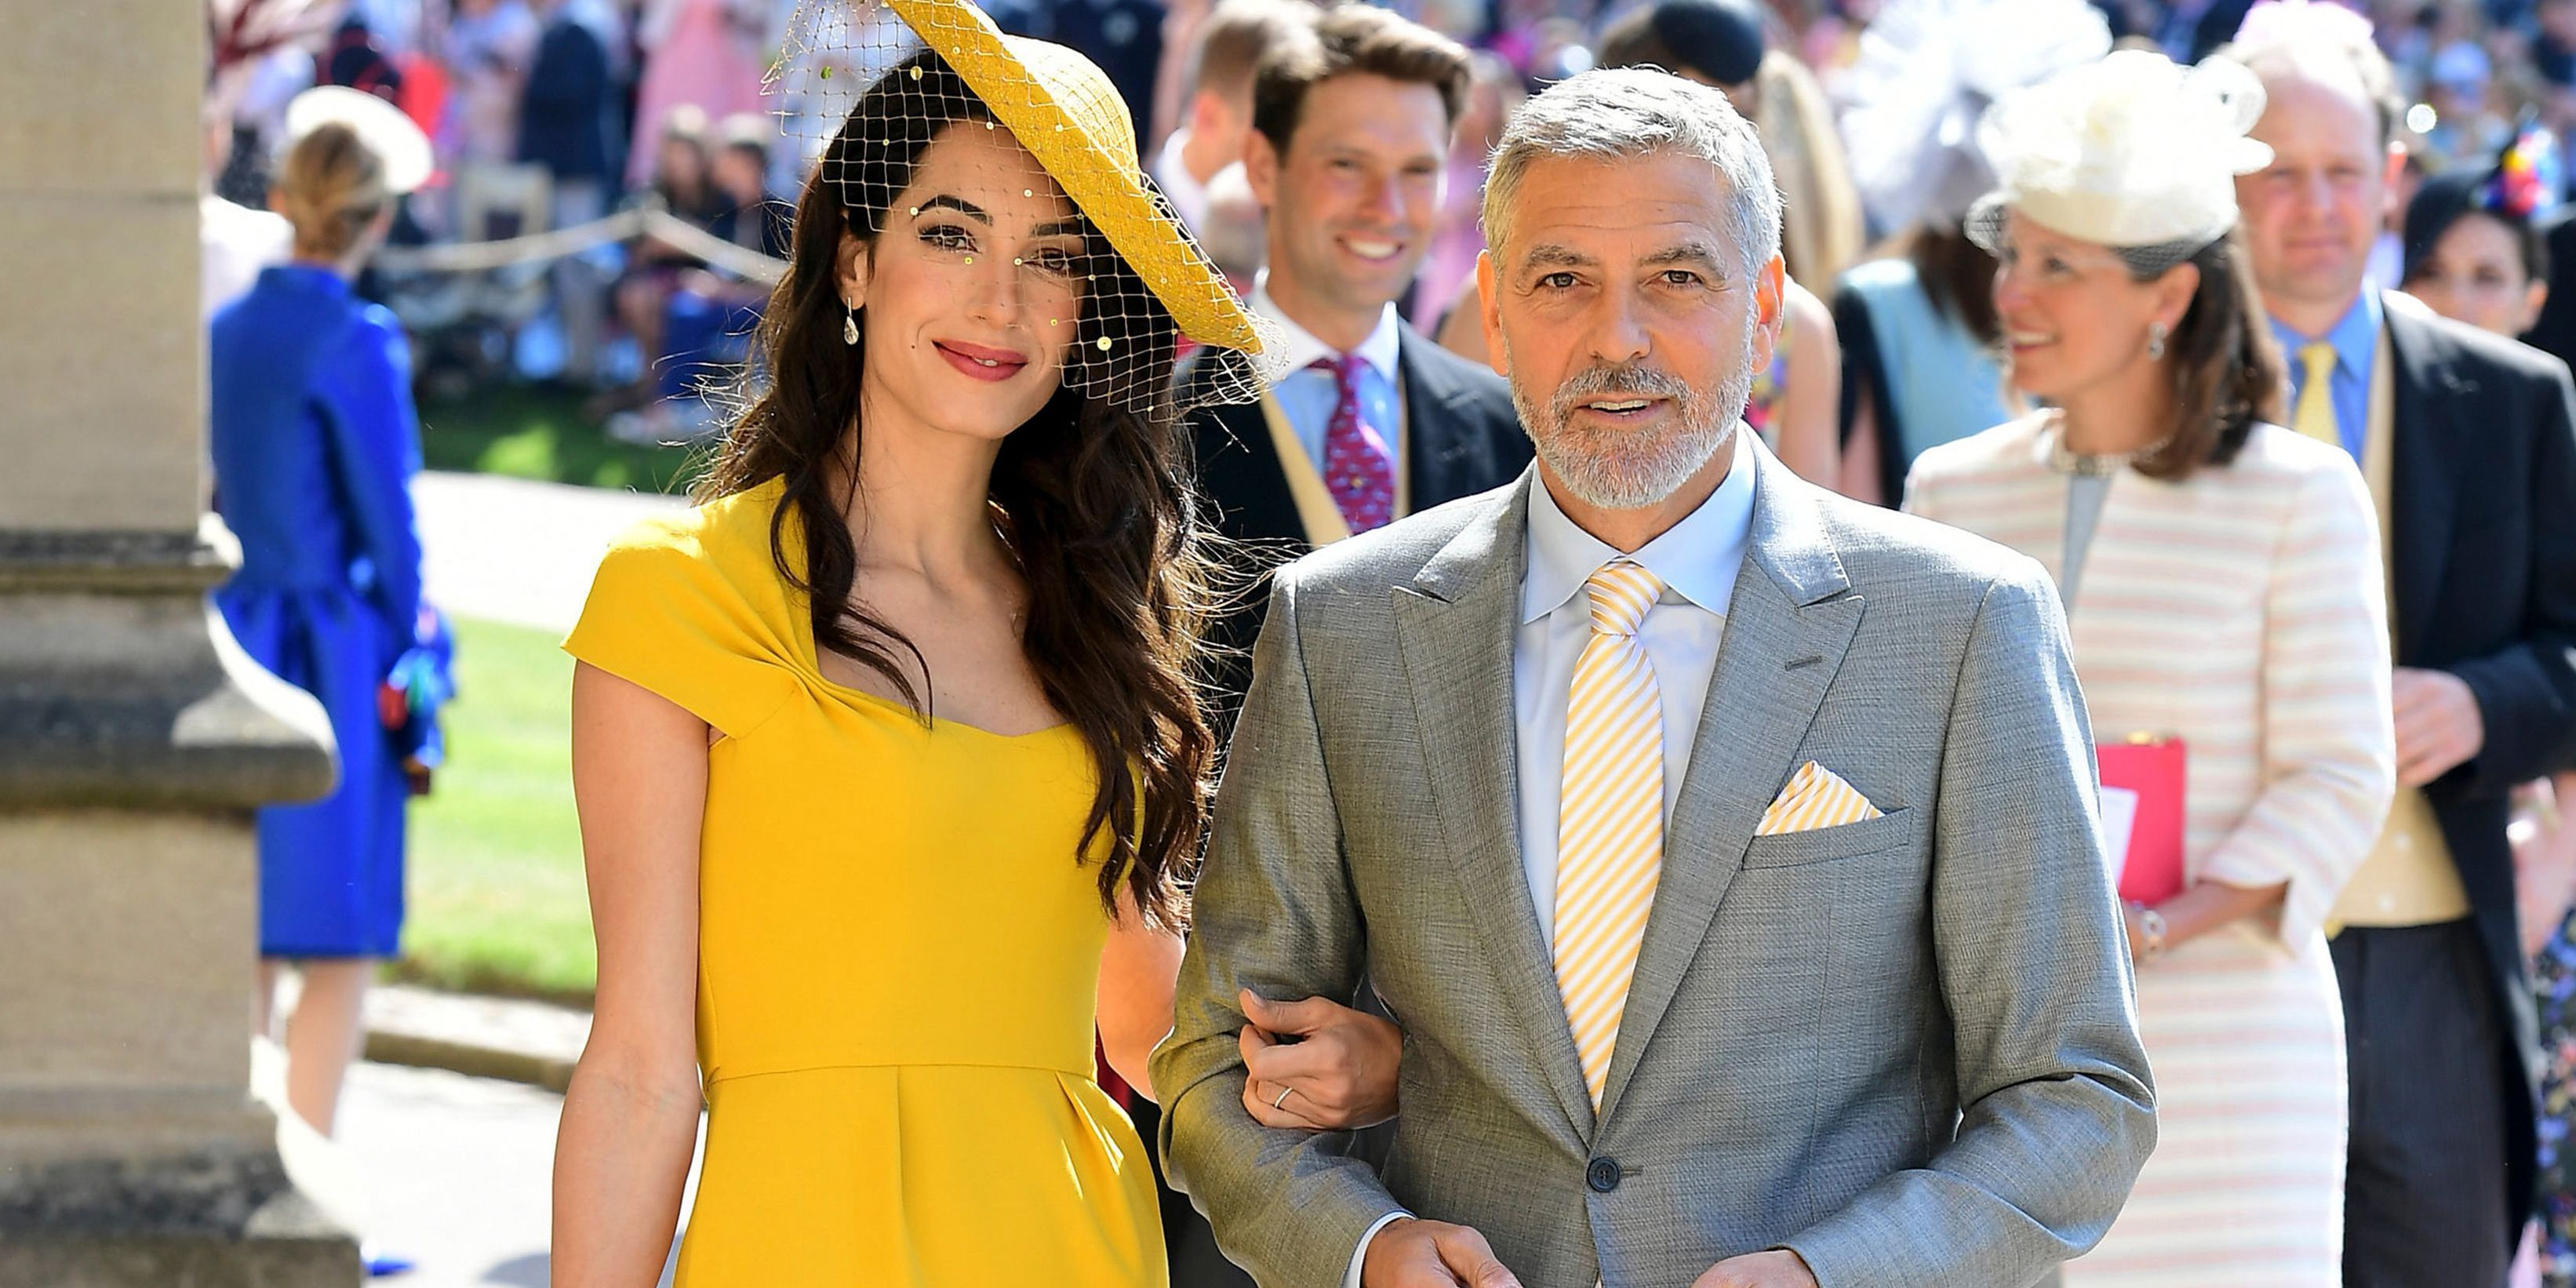 Amal Clooney's Yellow Royal Wedding Dress Is Now Available to Shop